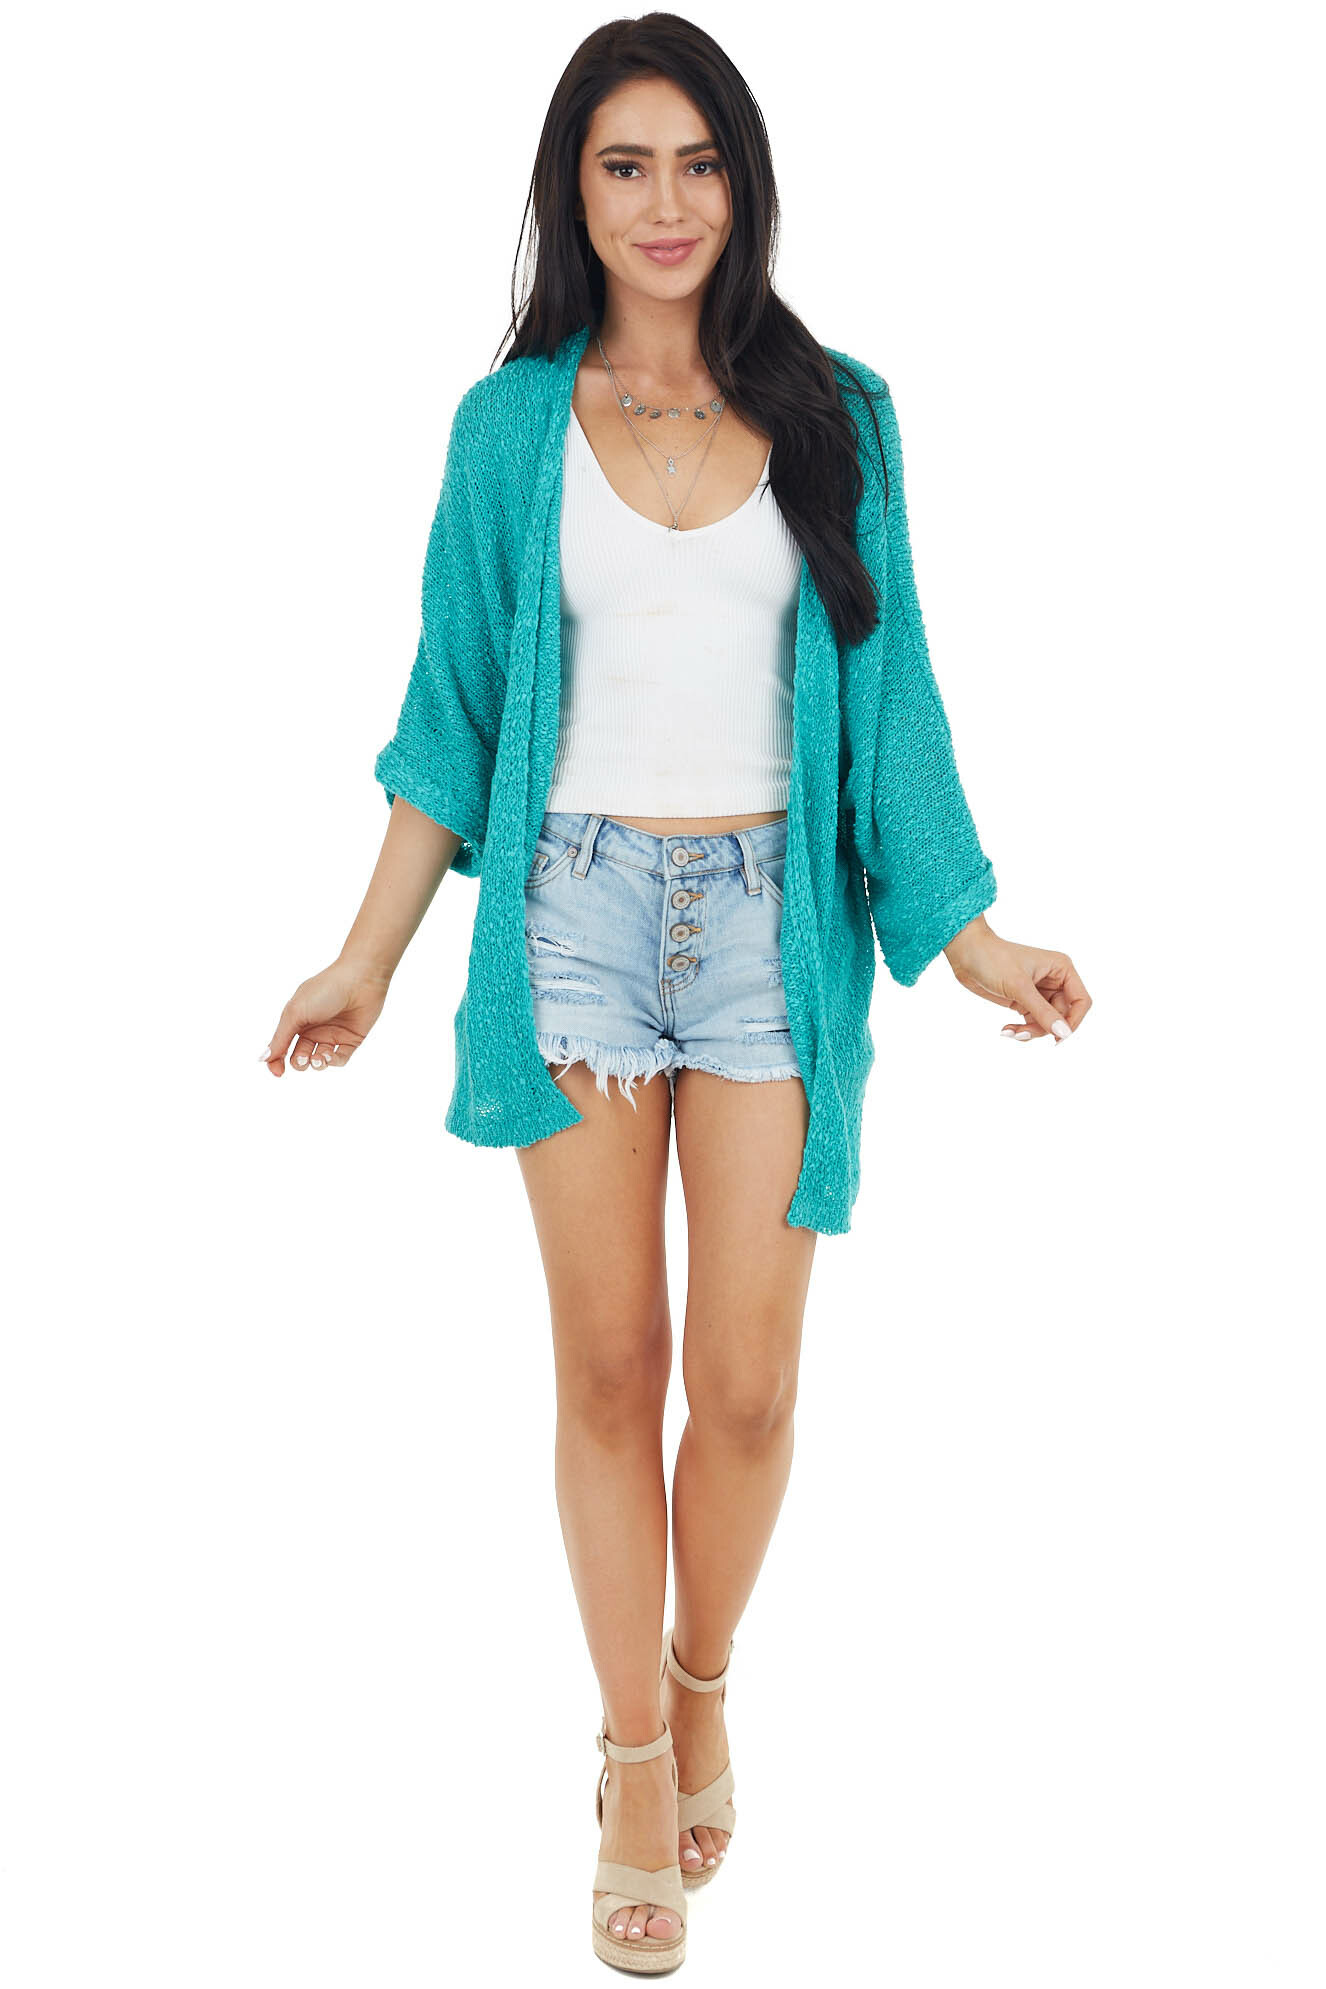 Aqua Textured Knit Cardigan with 3/4 Length Cuffed Sleeves